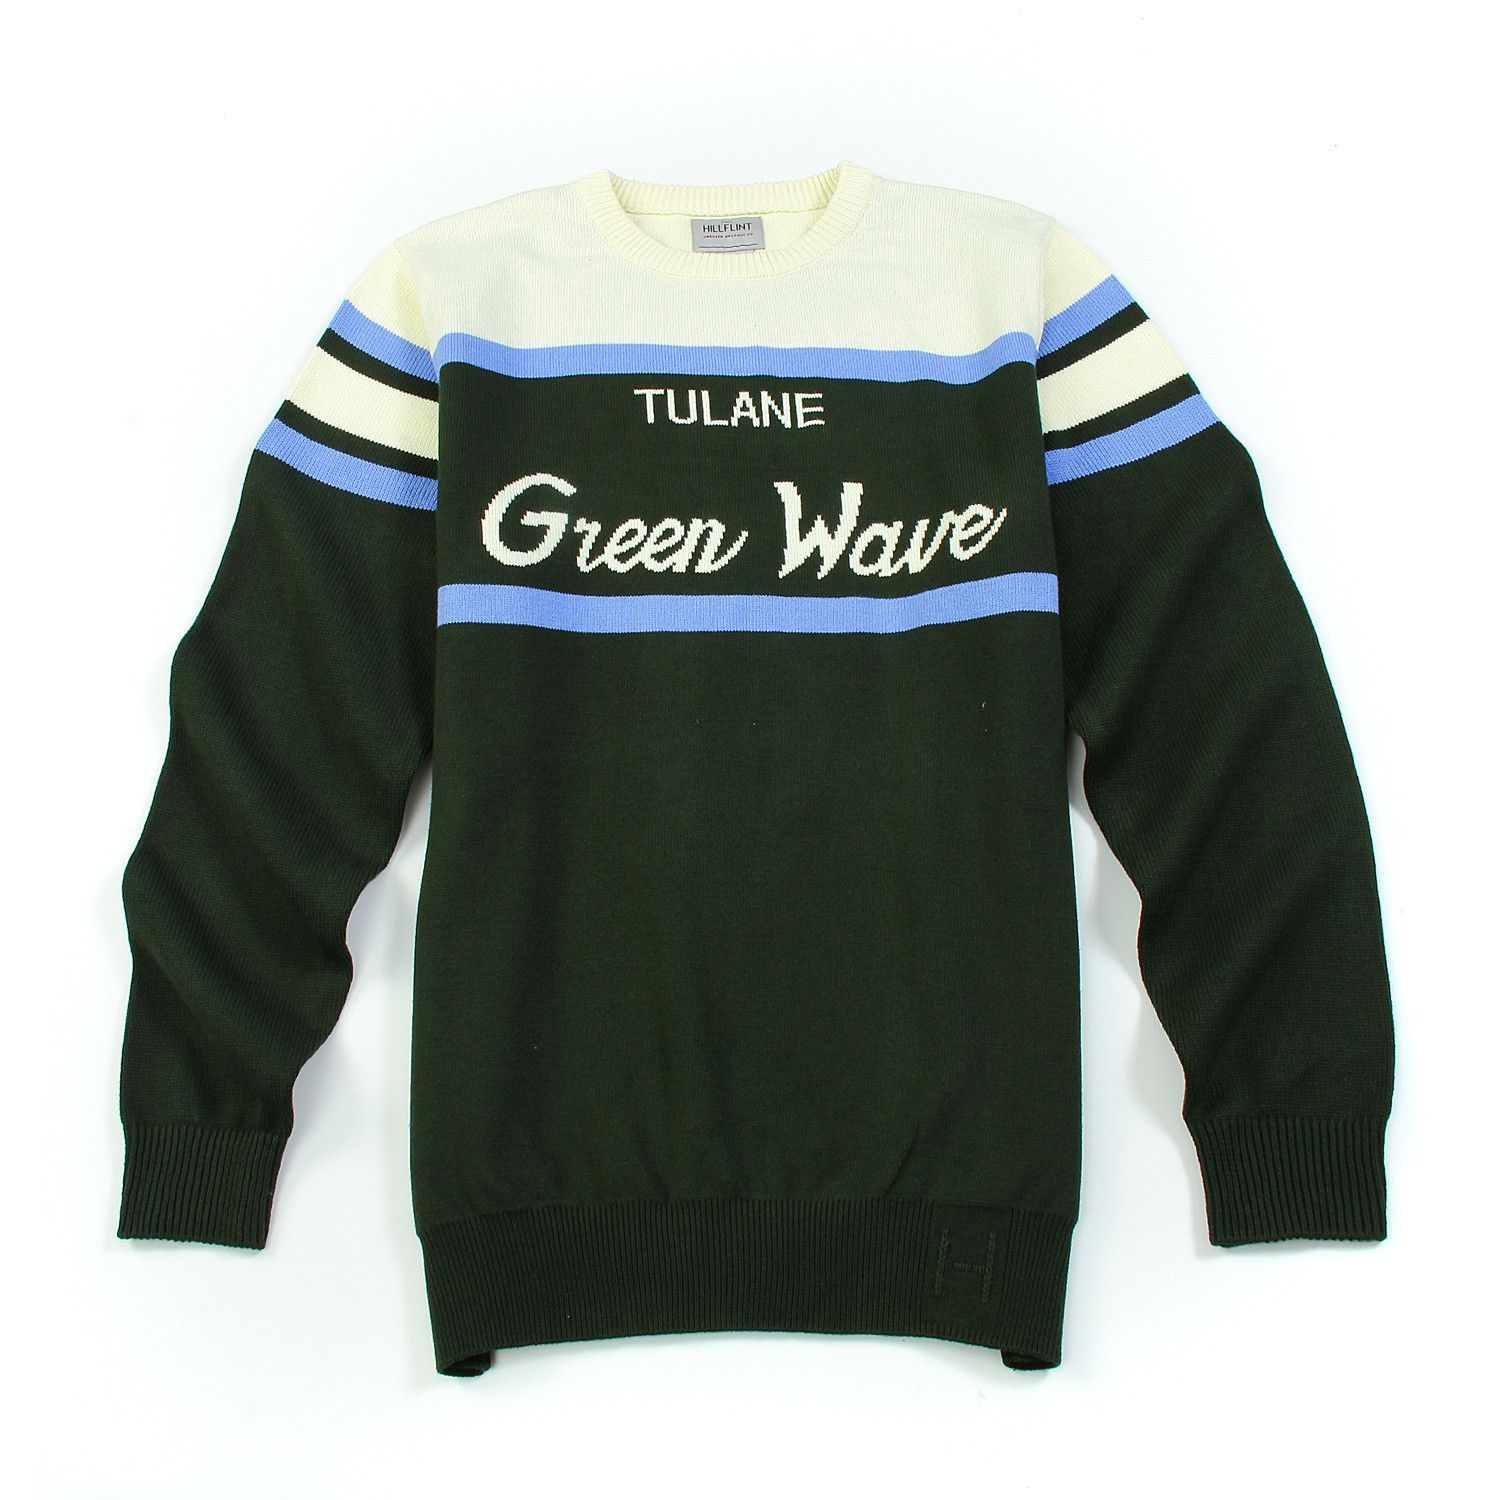 42870f7833e Tulane Vintage Tailgate Sweater Tailgate Outfit